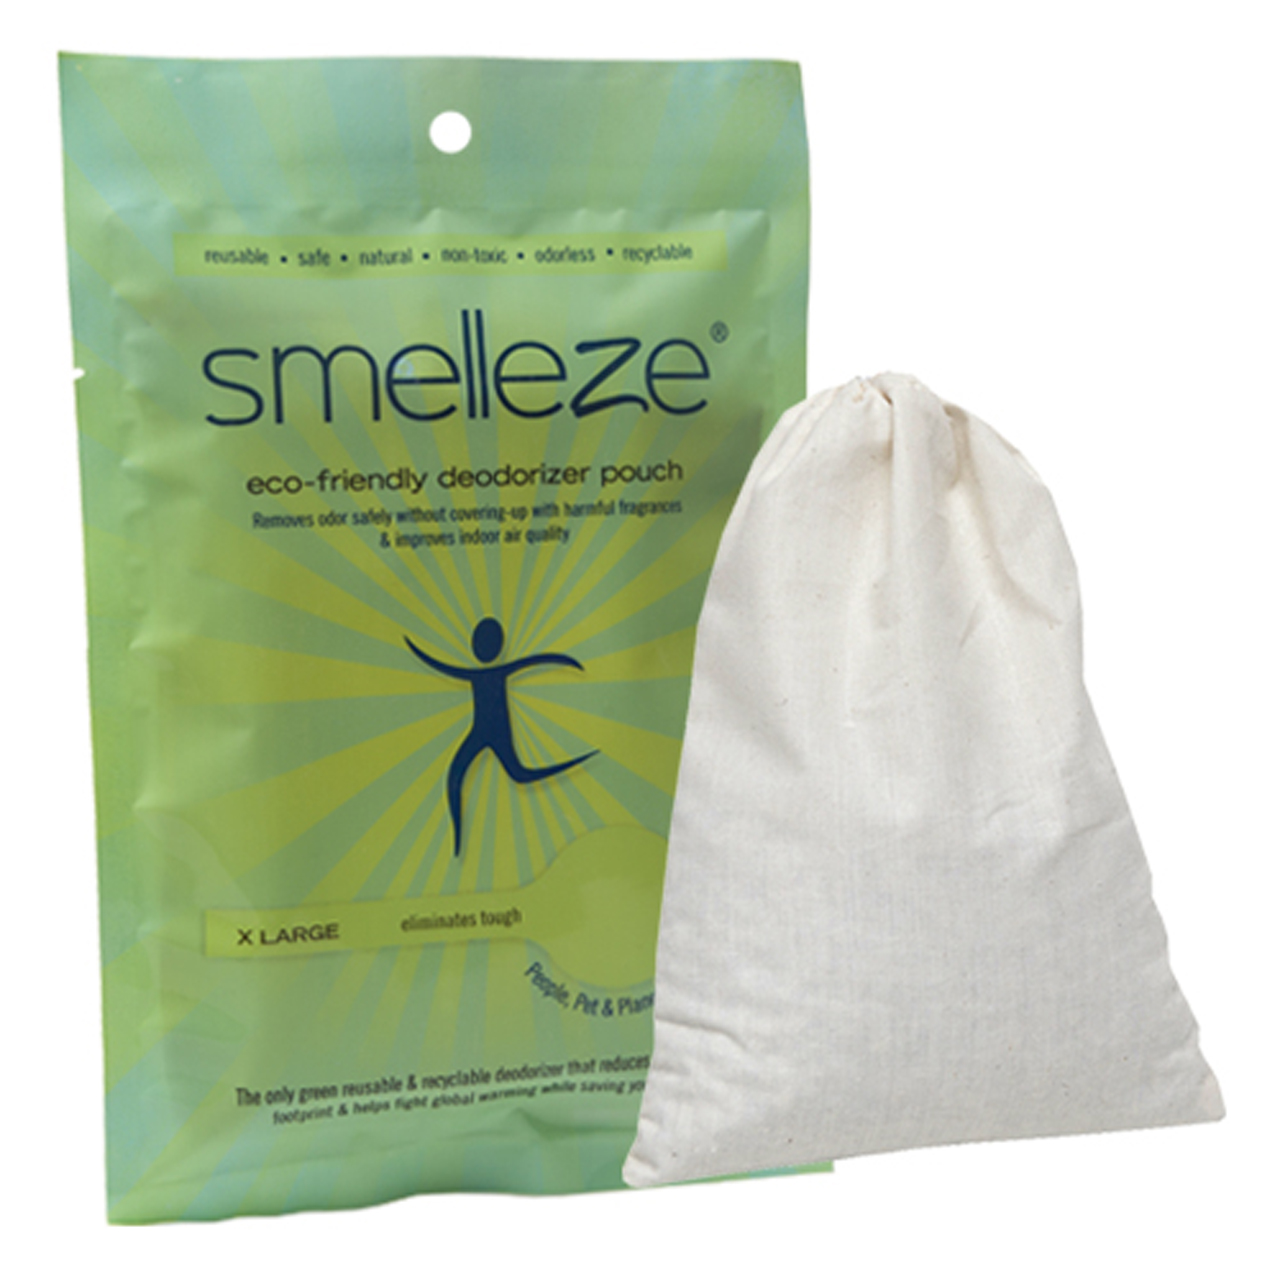 SMELLEZE Reusable Industrial Odor Removal Deodorizer Pouch: Rids Chemical Odor Safely in 300 Sq. Ft.